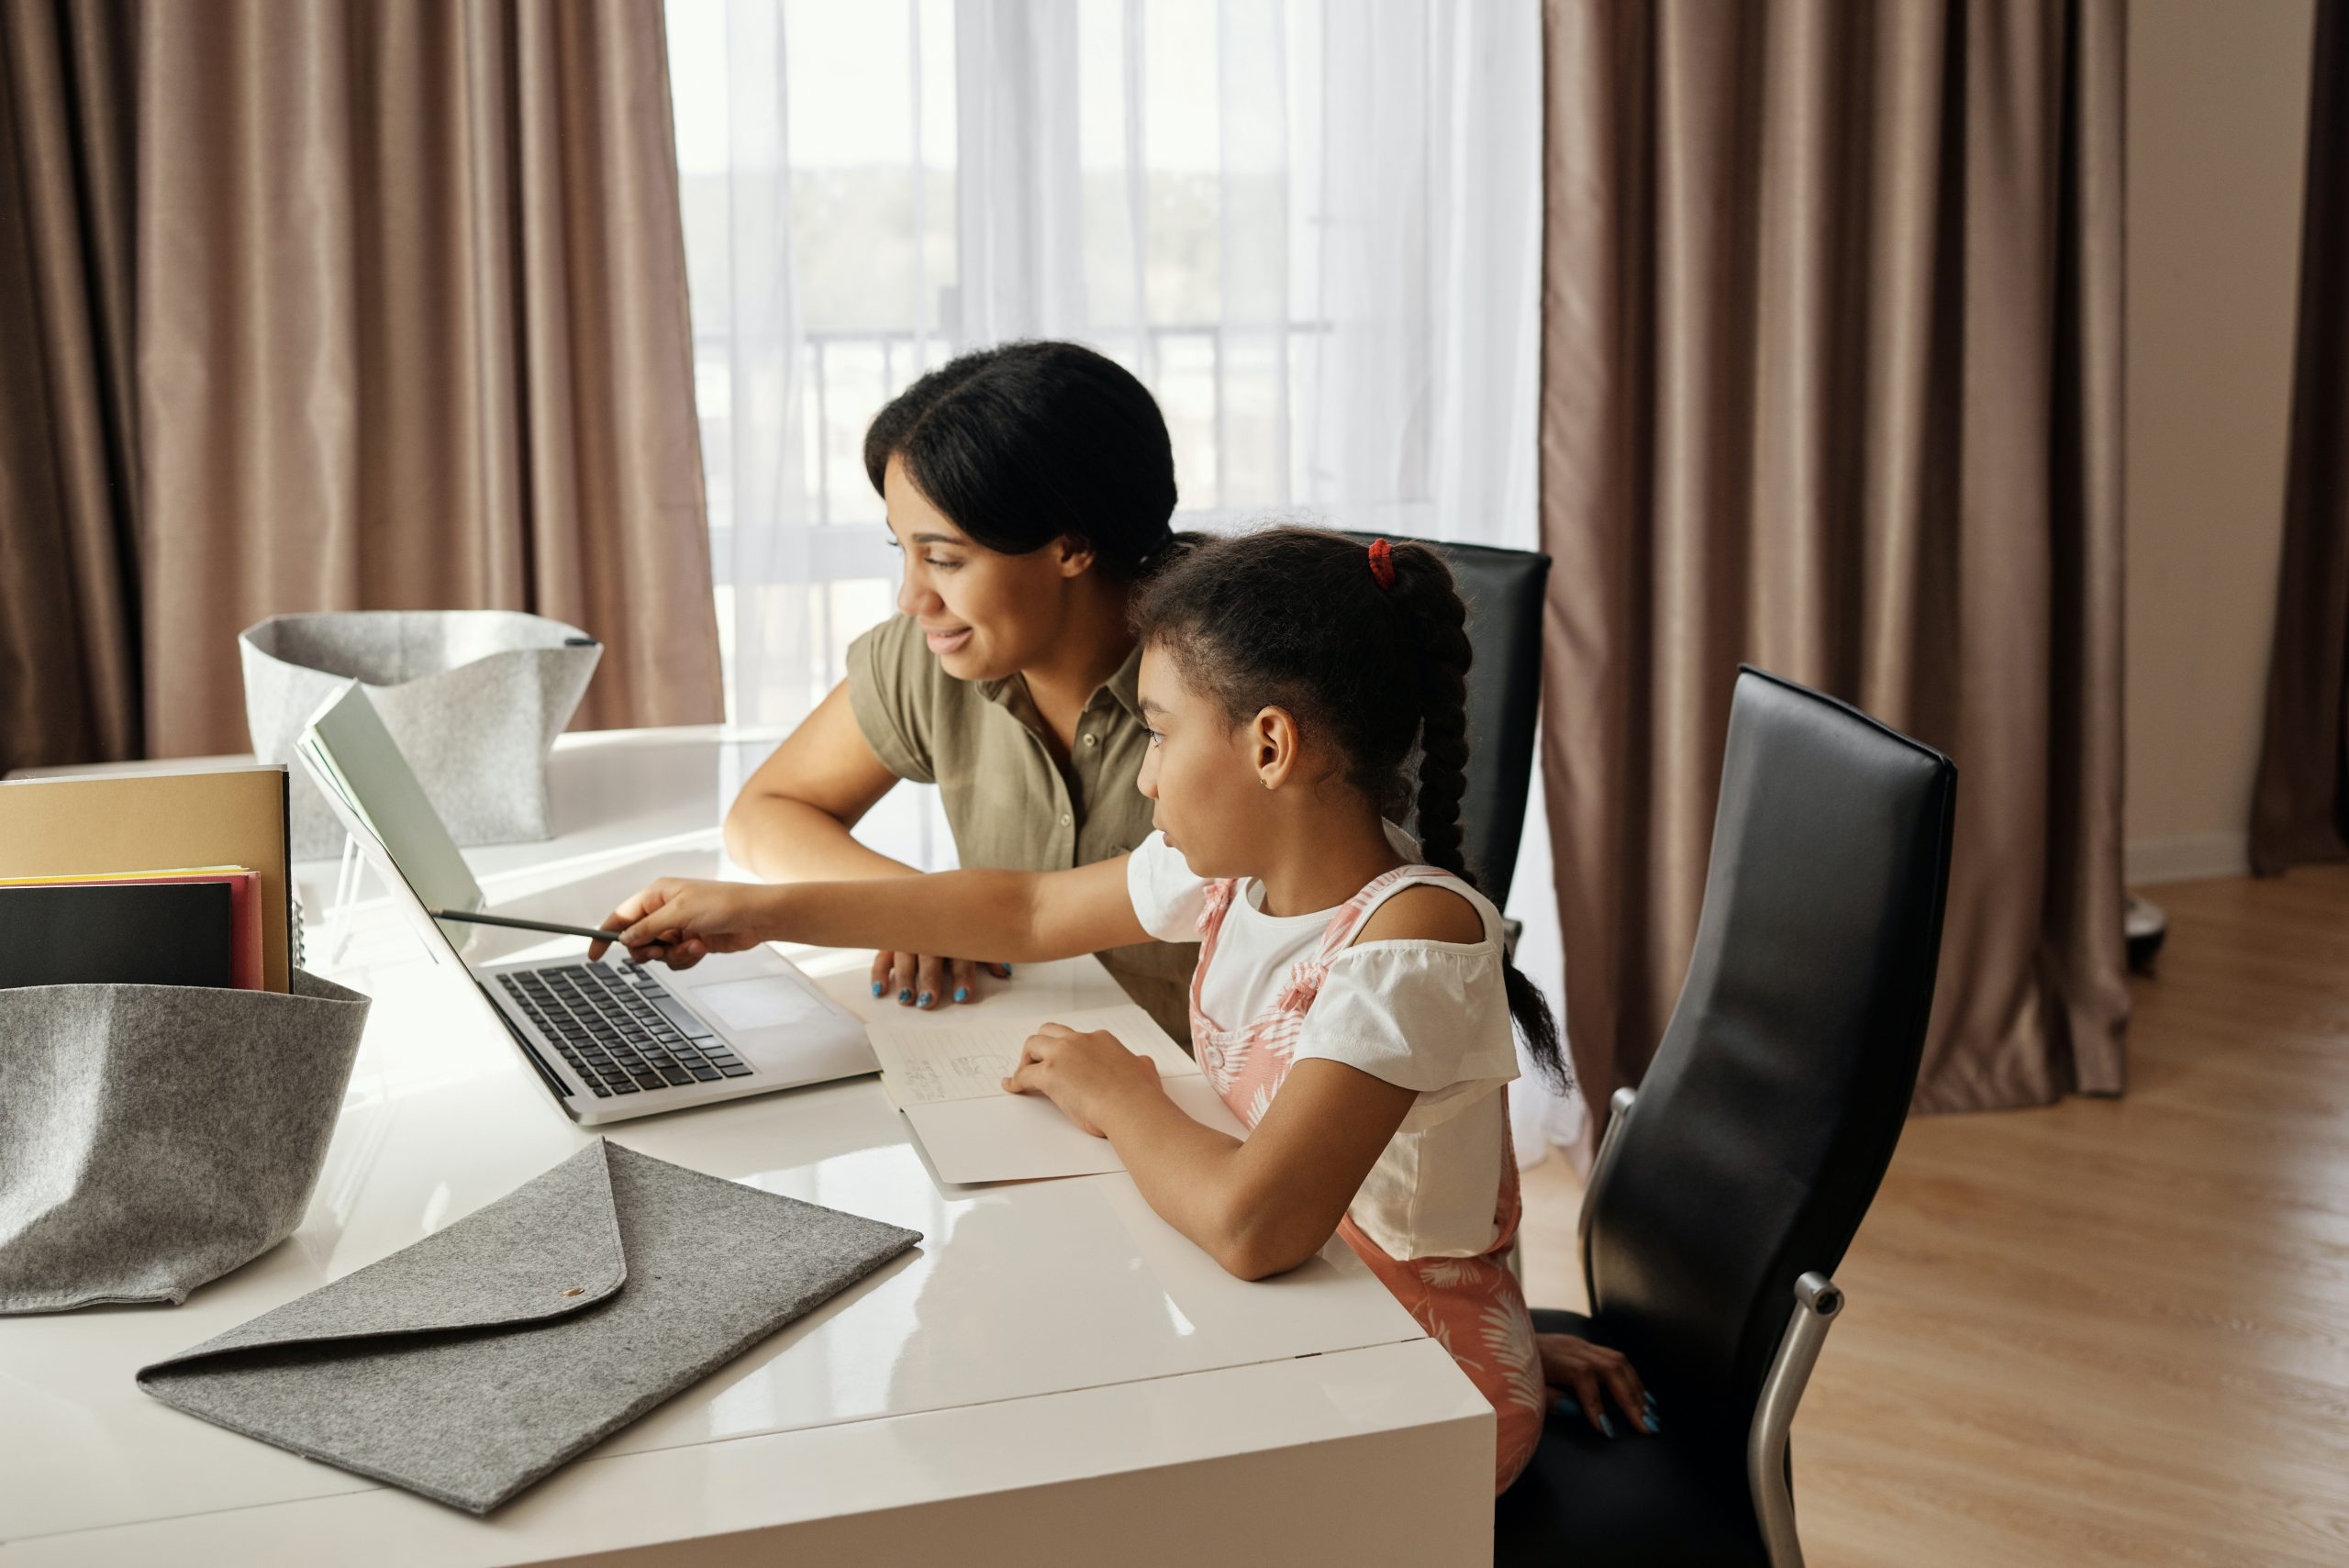 Home learning: top tips and online resources